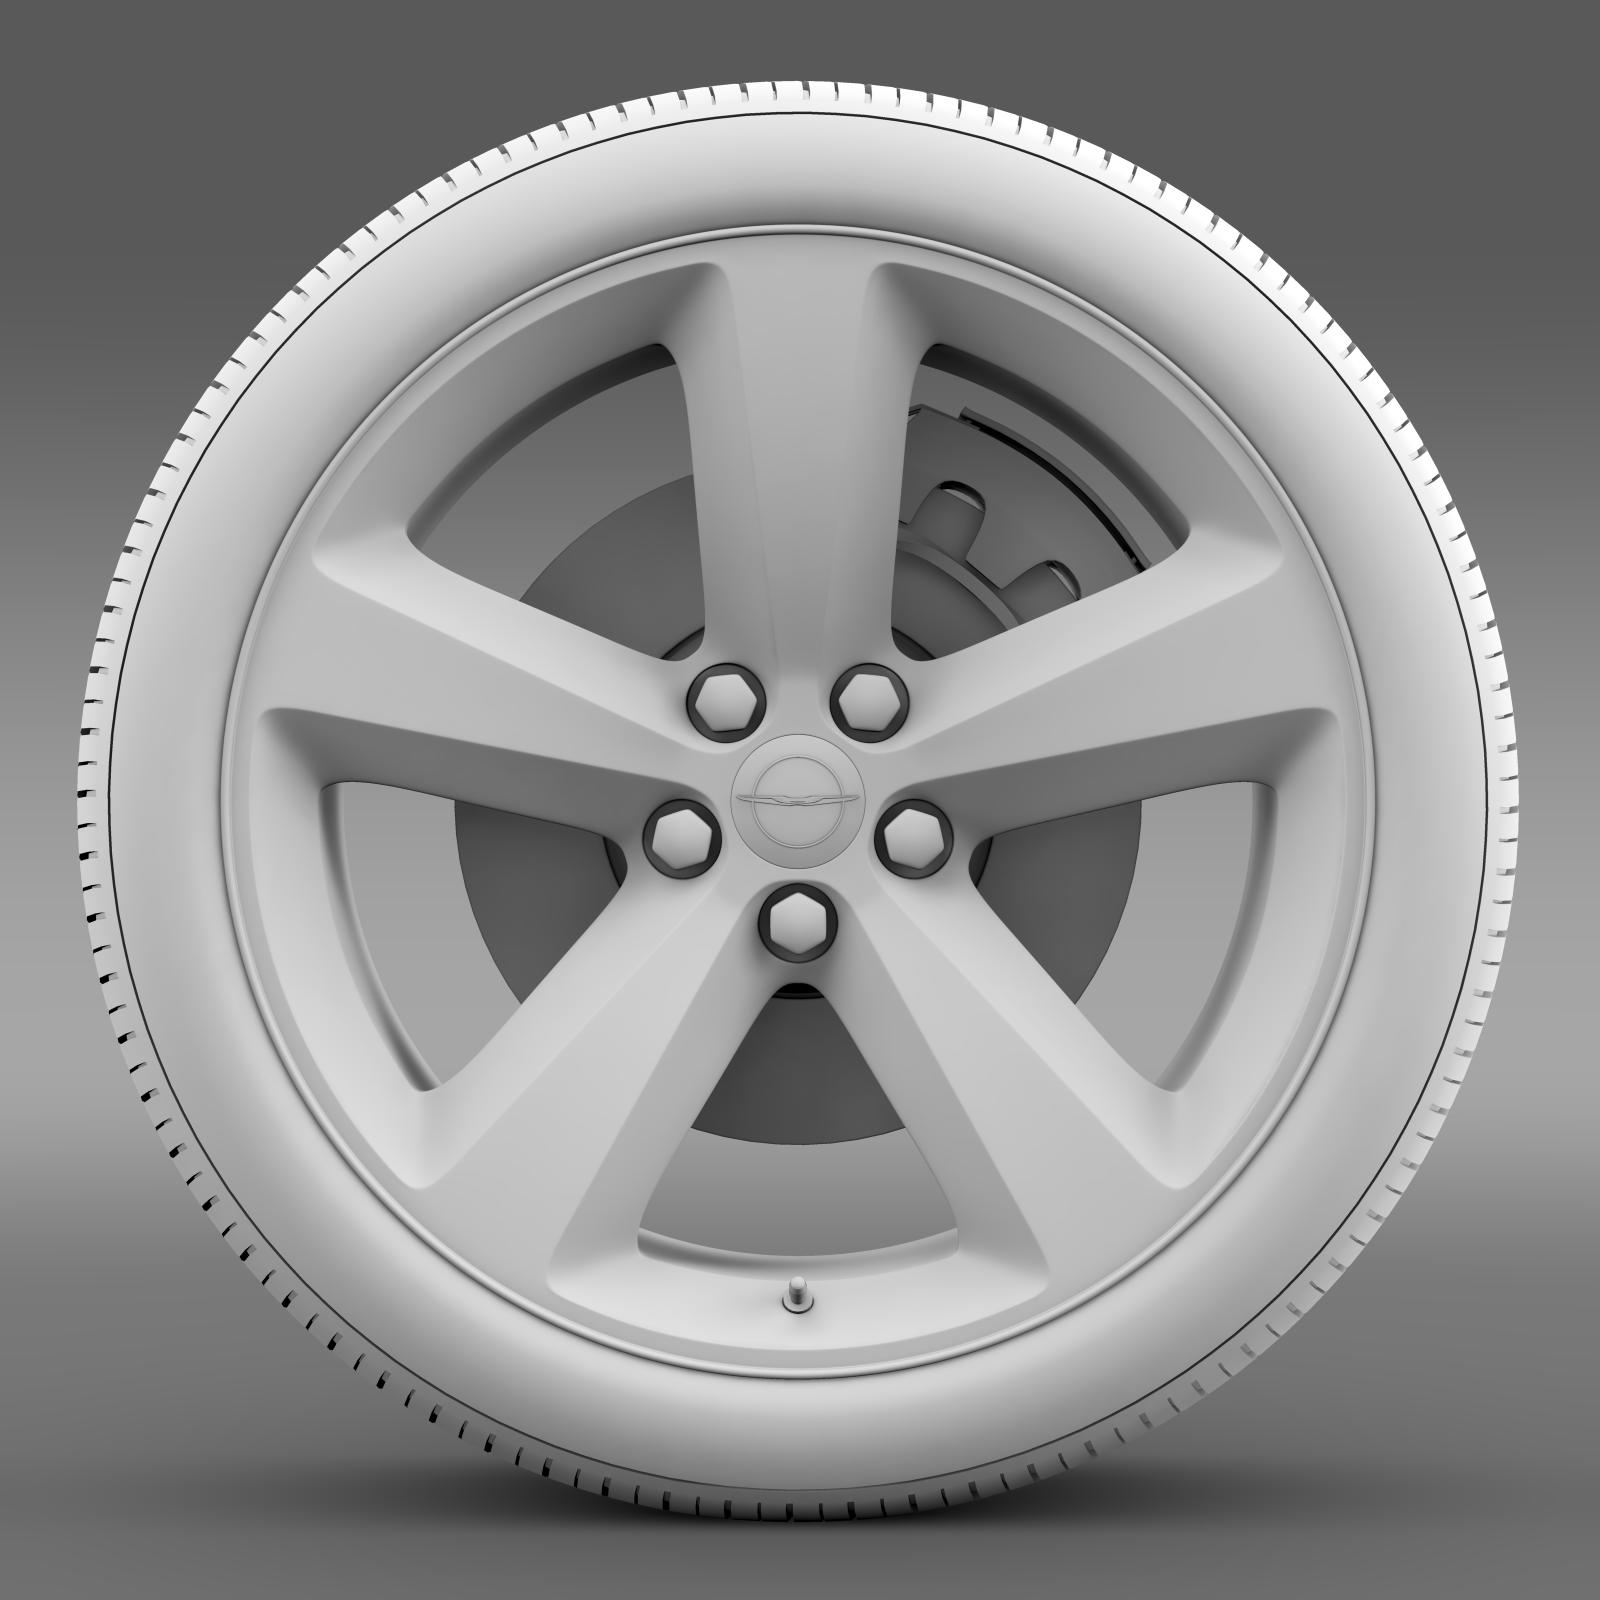 chrysler 300s wheel 3d model 3ds max fbx c4d lwo ma mb hrc xsi obj 210675